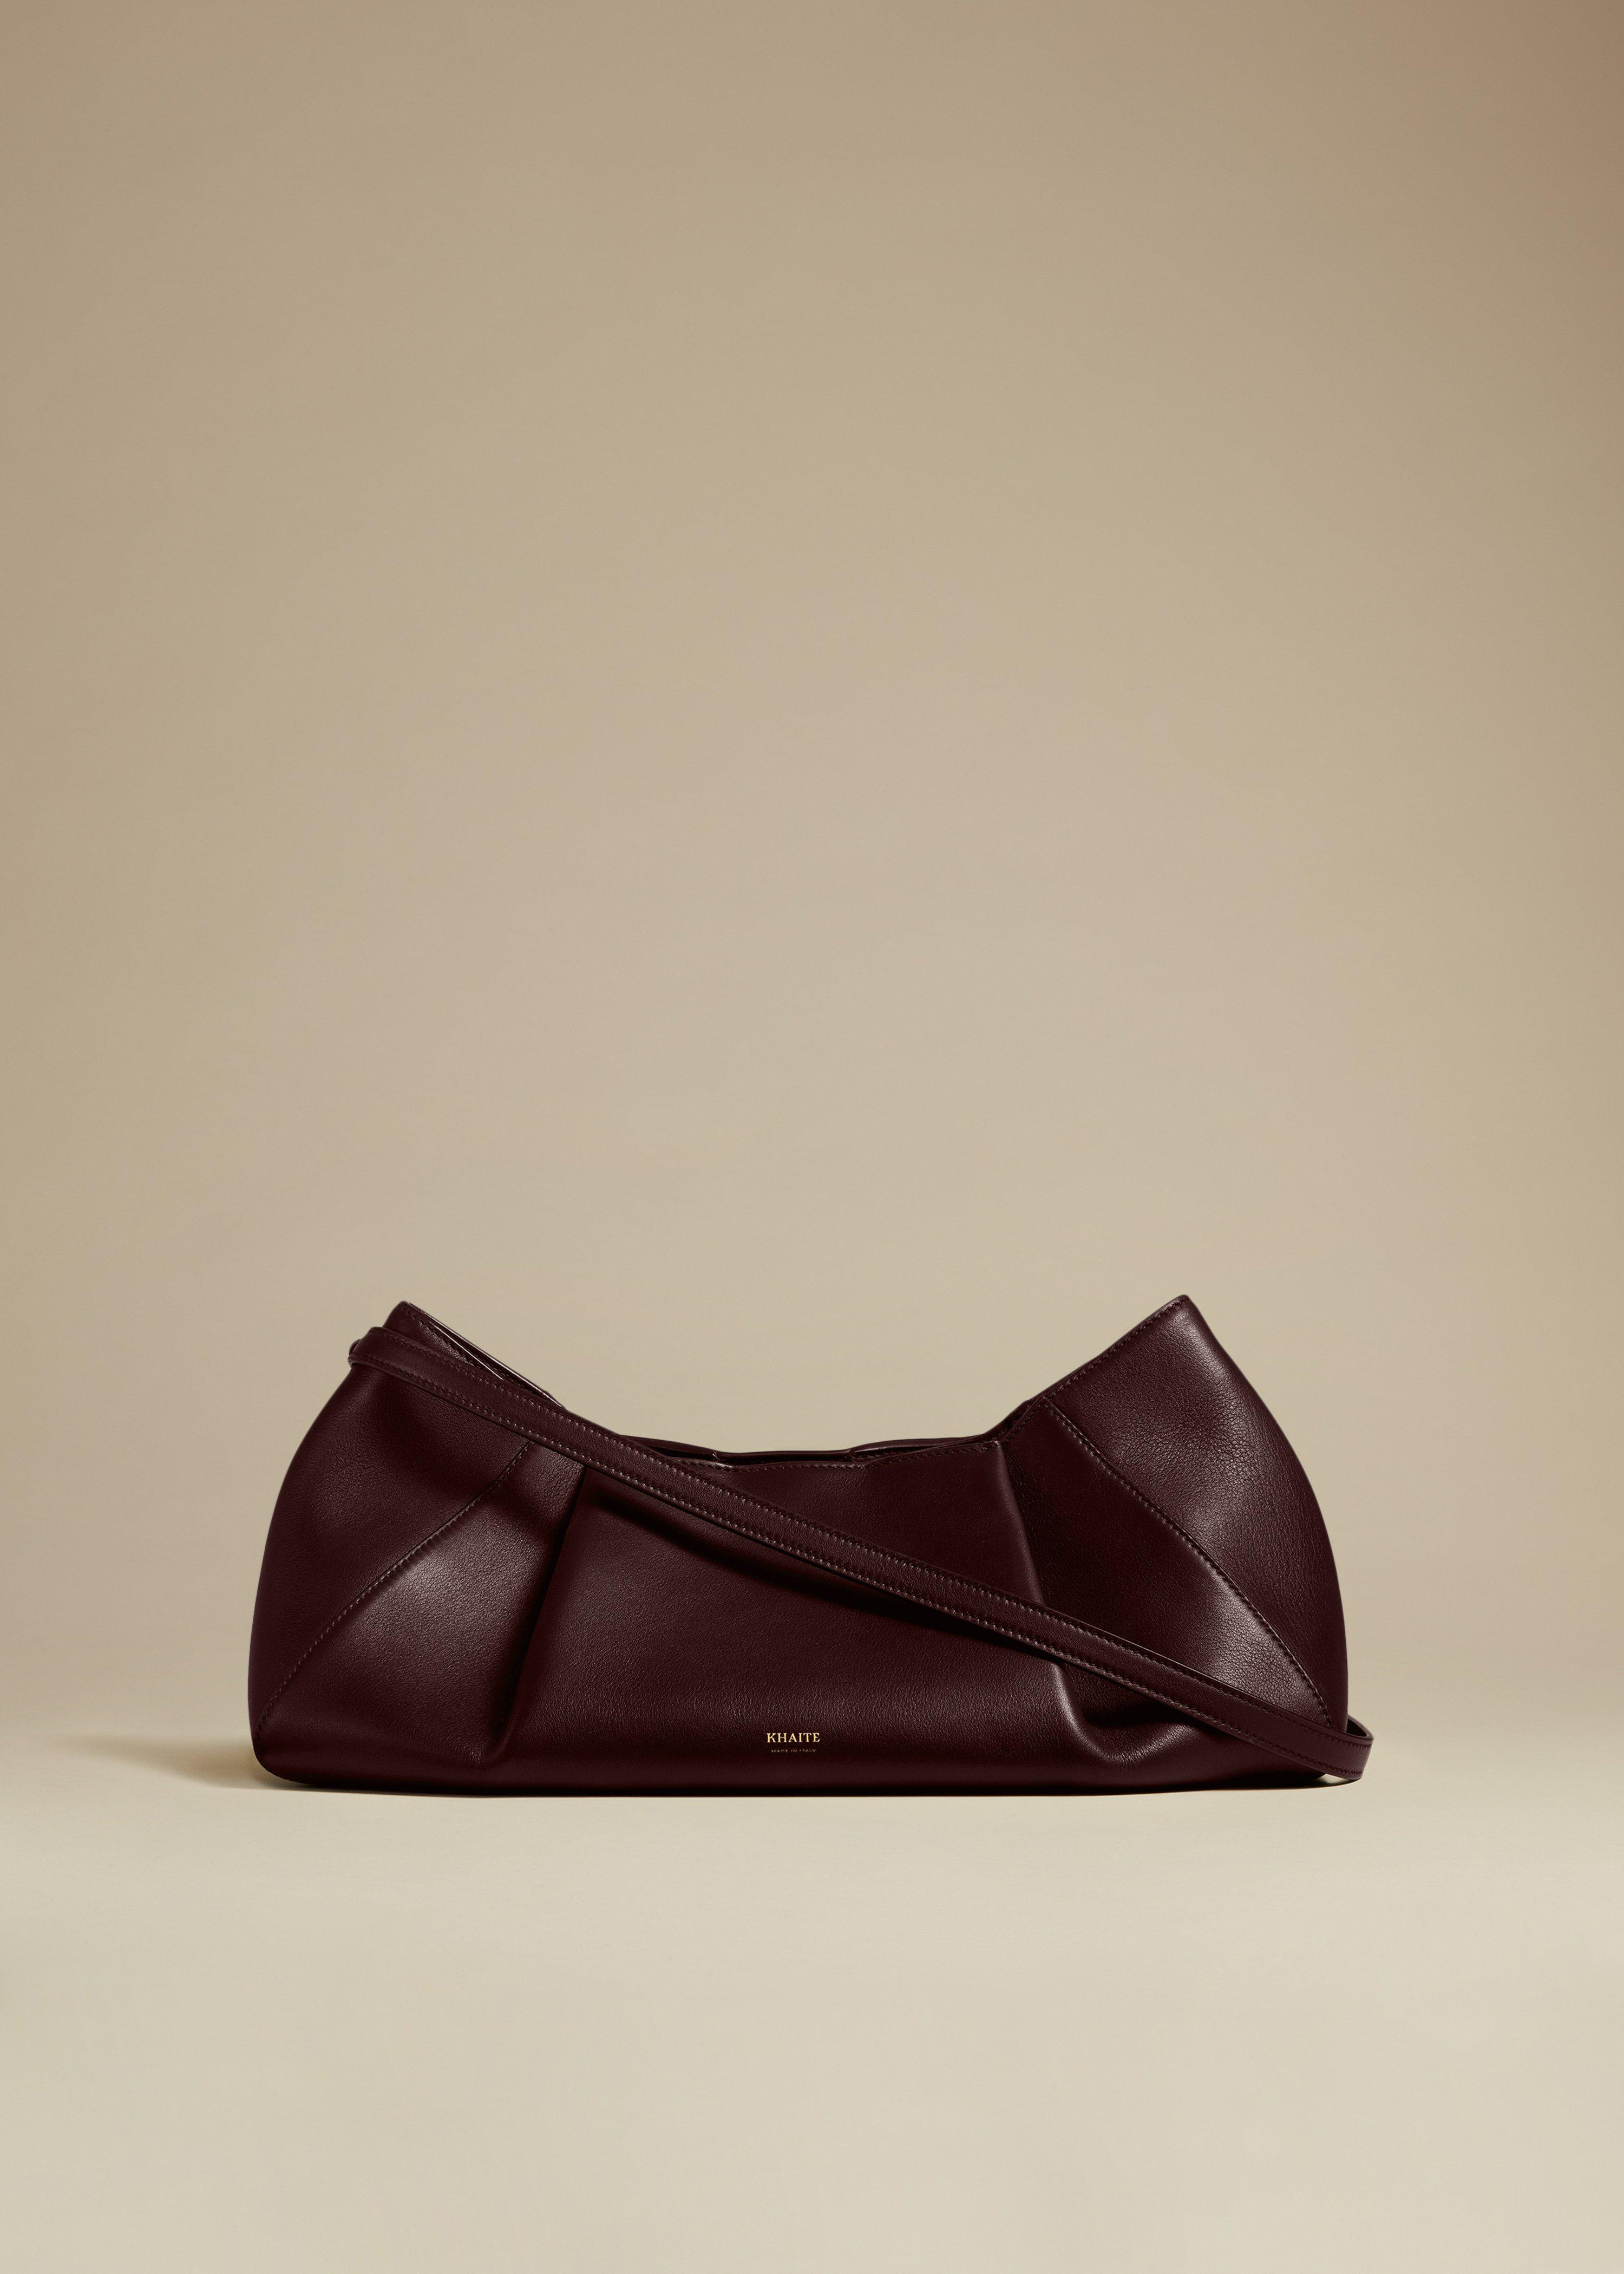 The Small Jeanne Crossbody Bag in Deep Red Leather